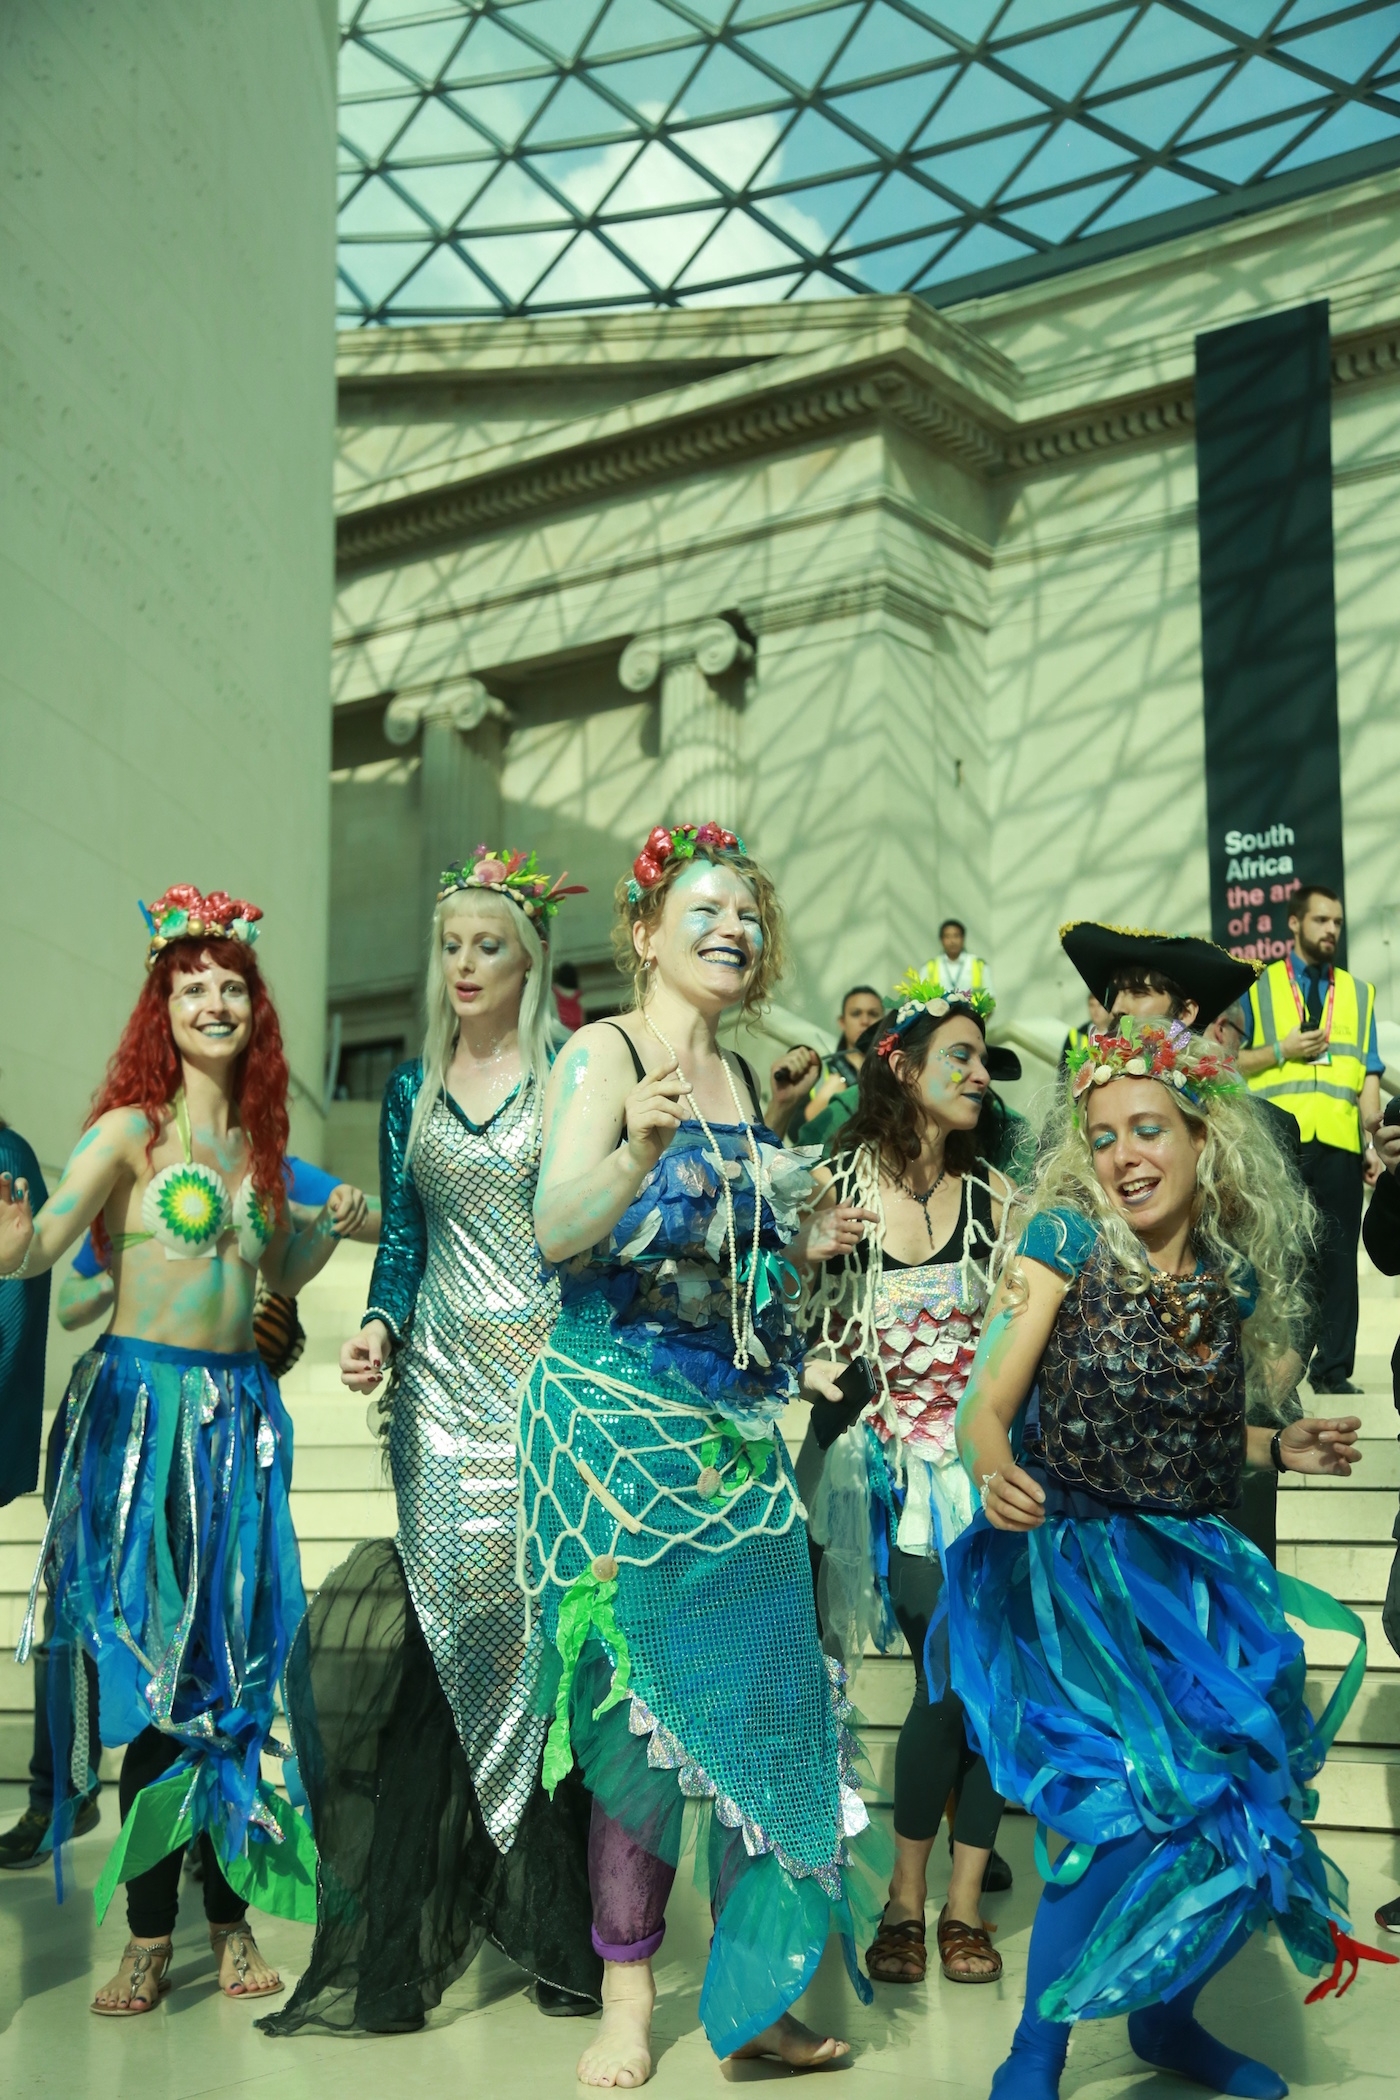 The merfolk chorus sing to thank BP for more 'Sunken Cities' during Sunday's performance protest at the British Museum.